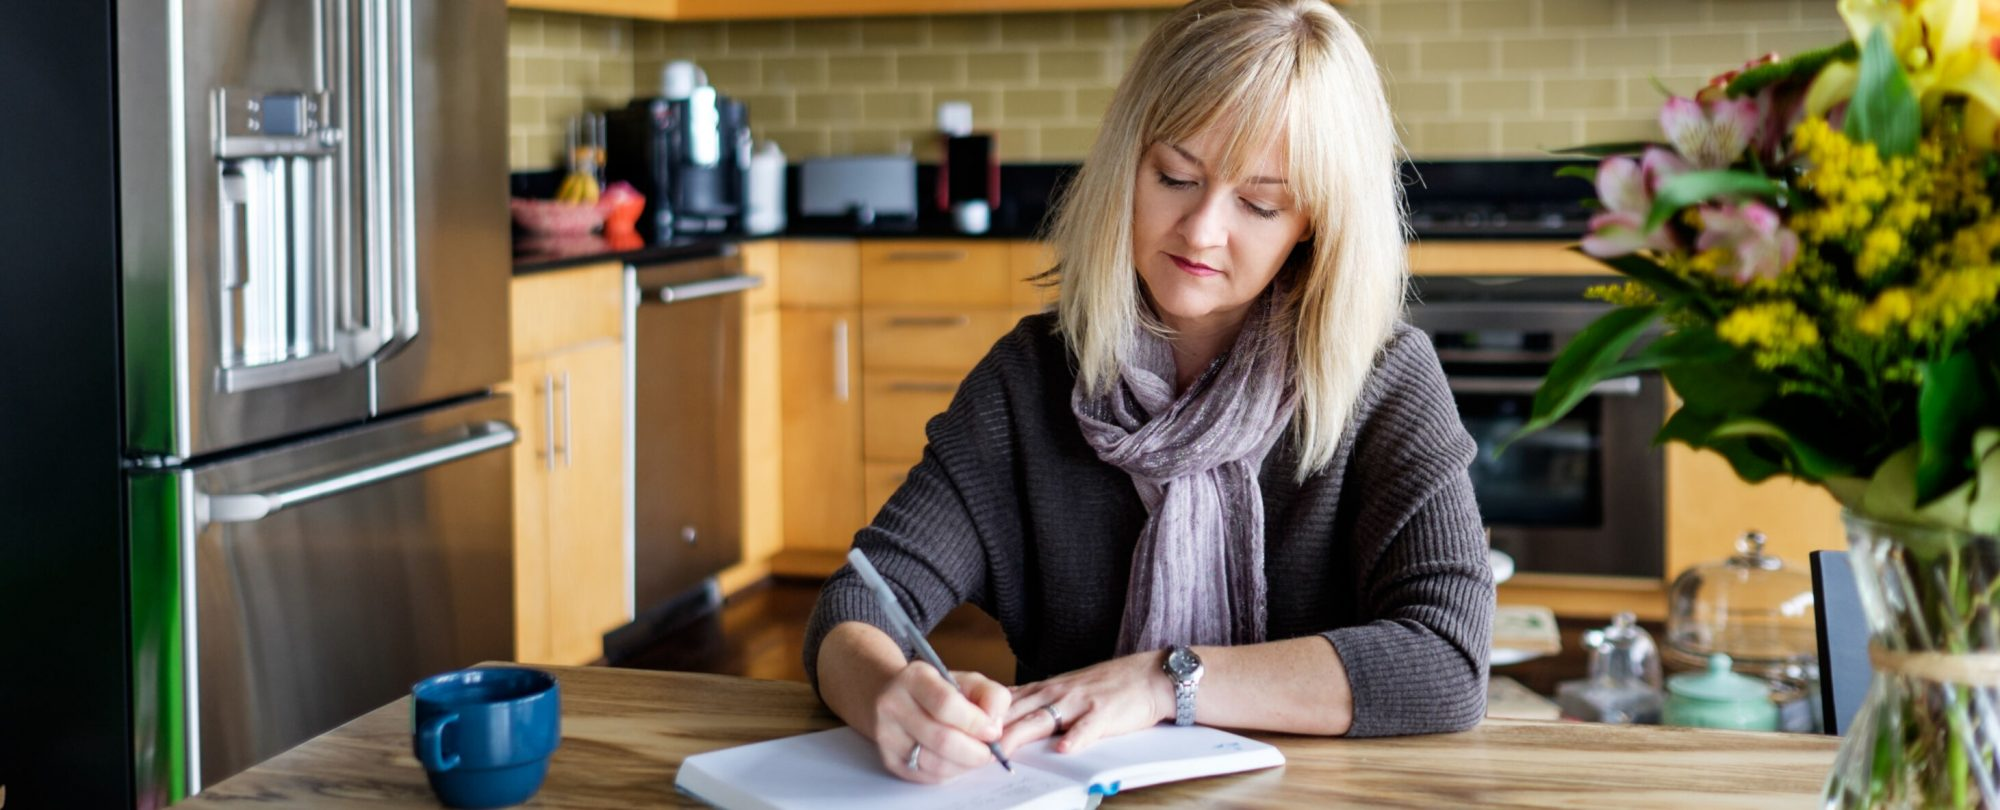 Woman Writing On A Notebook At Home